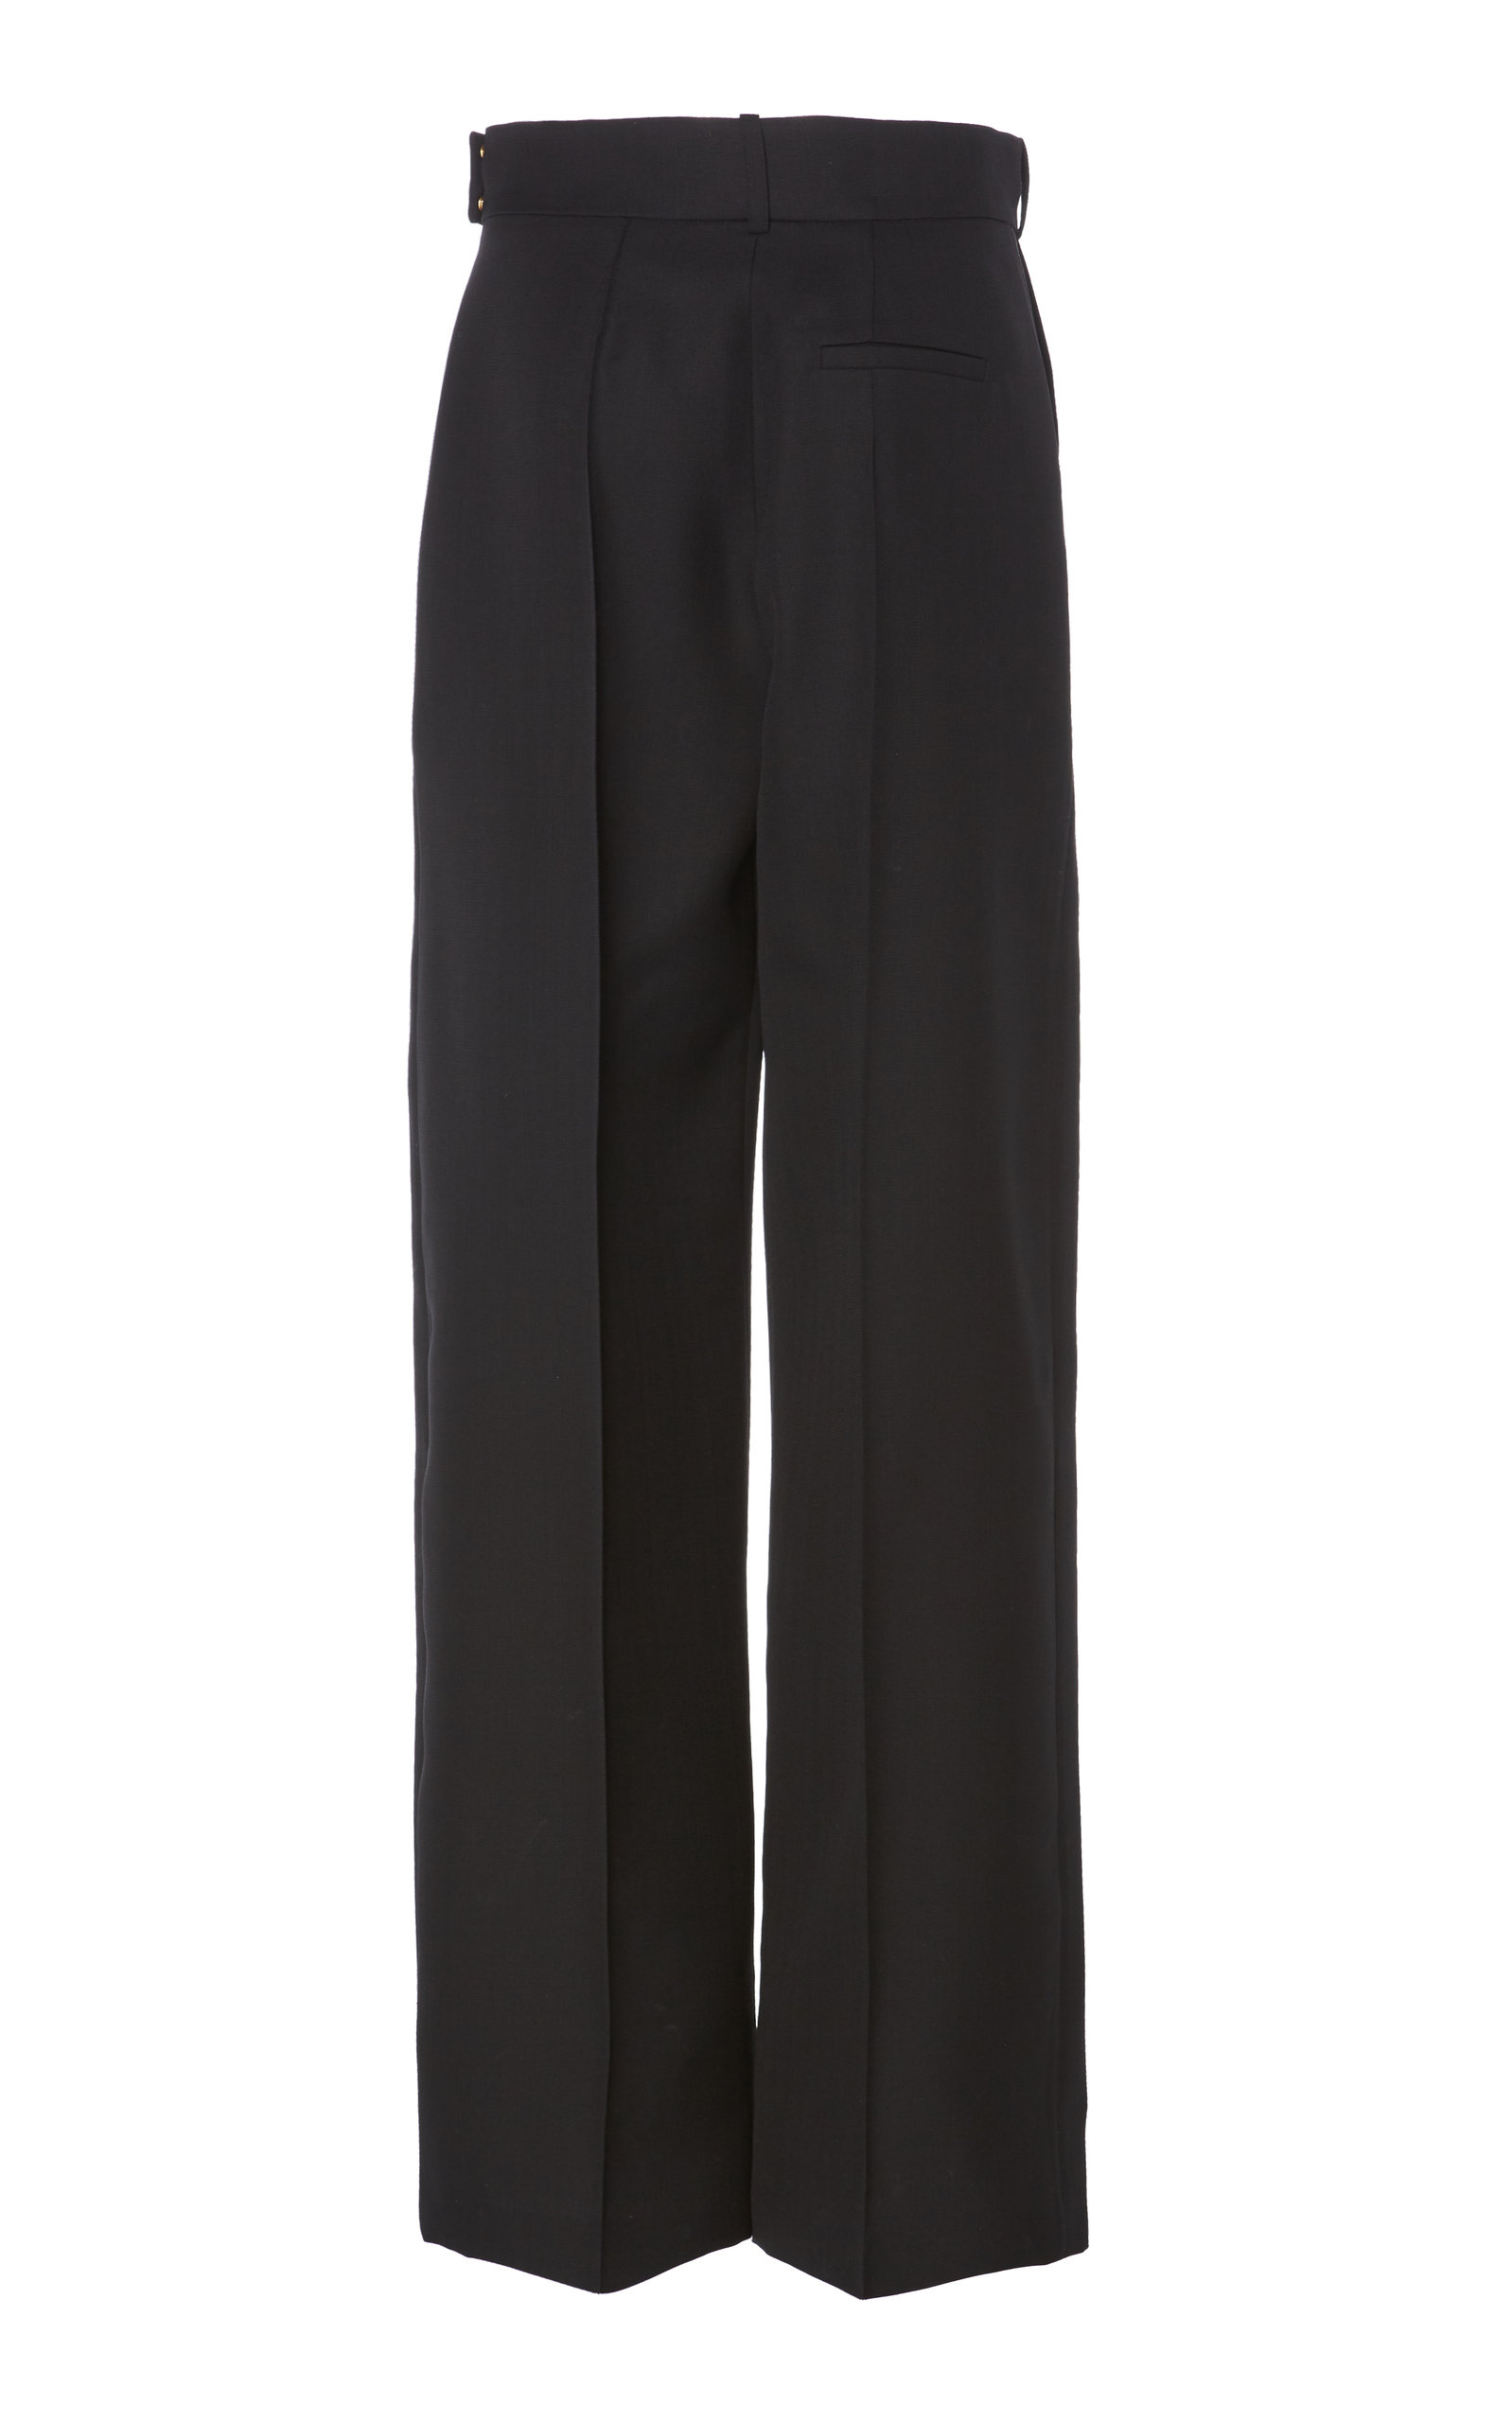 861cd6f31e6da large alexandre-vauthier-black-wide-leg-mid-rise-wool-trousers.jpg